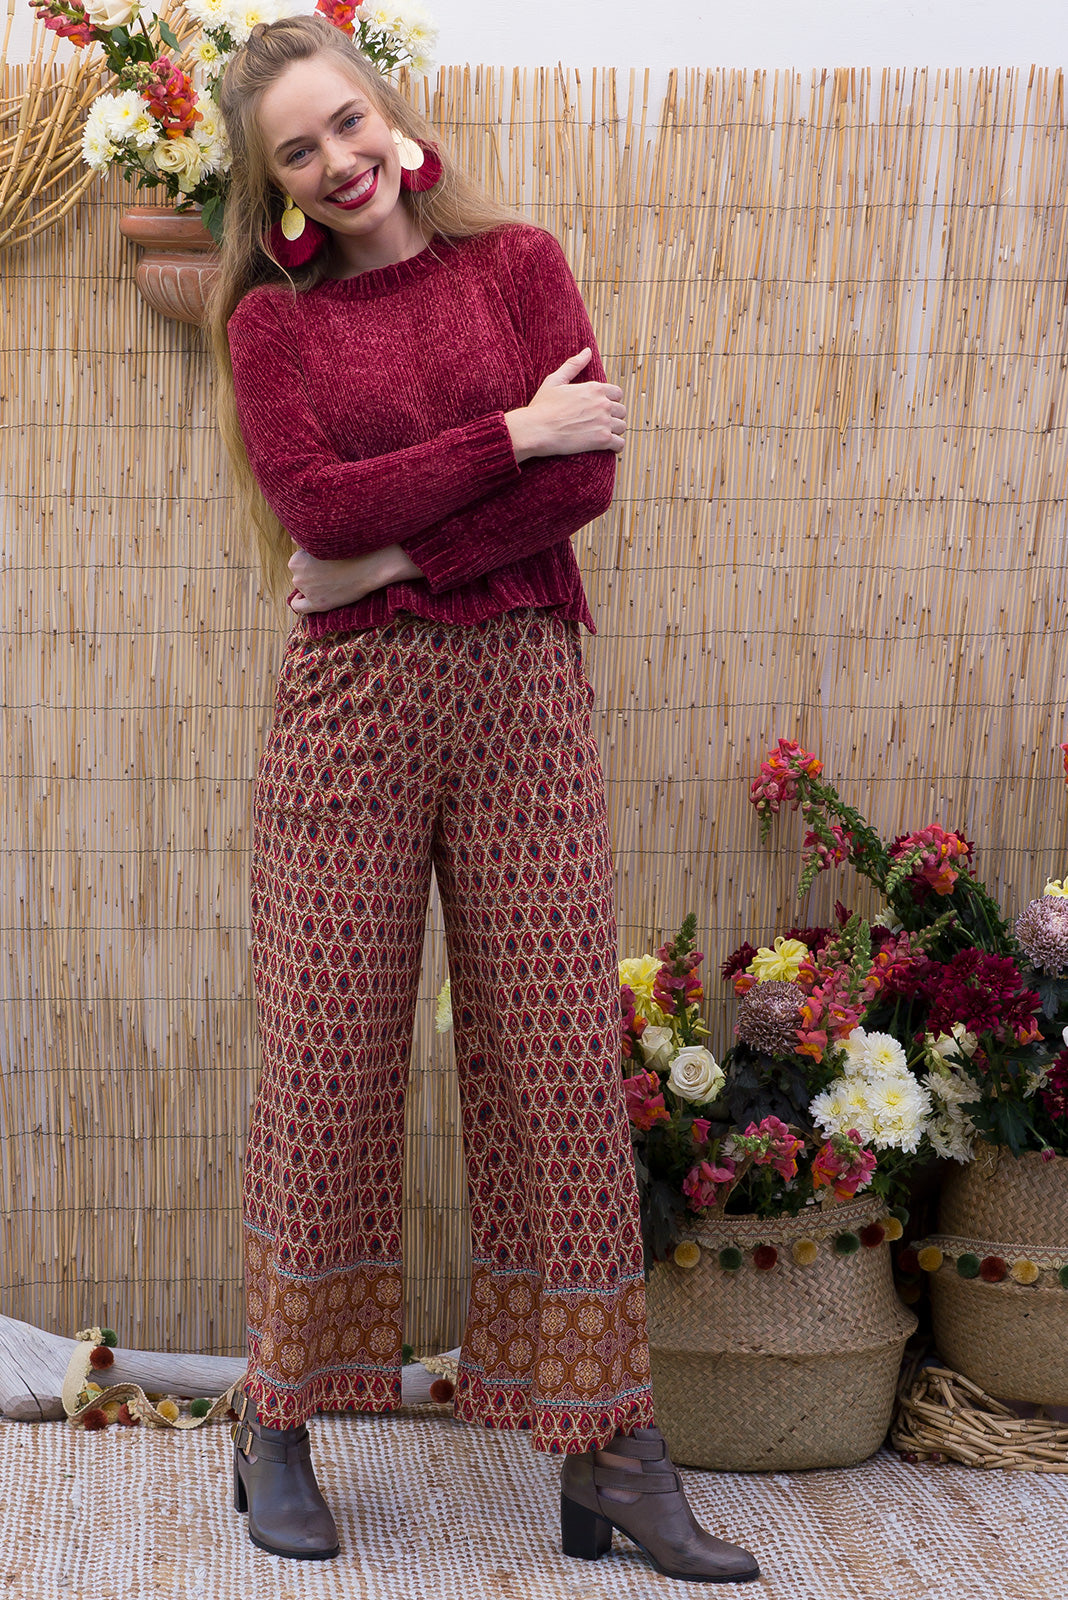 Traveller pants desert rust are wide leg pants with an elastic waist, deep pockets and they feature a boho inspired border print on a rust coloured woven rayon